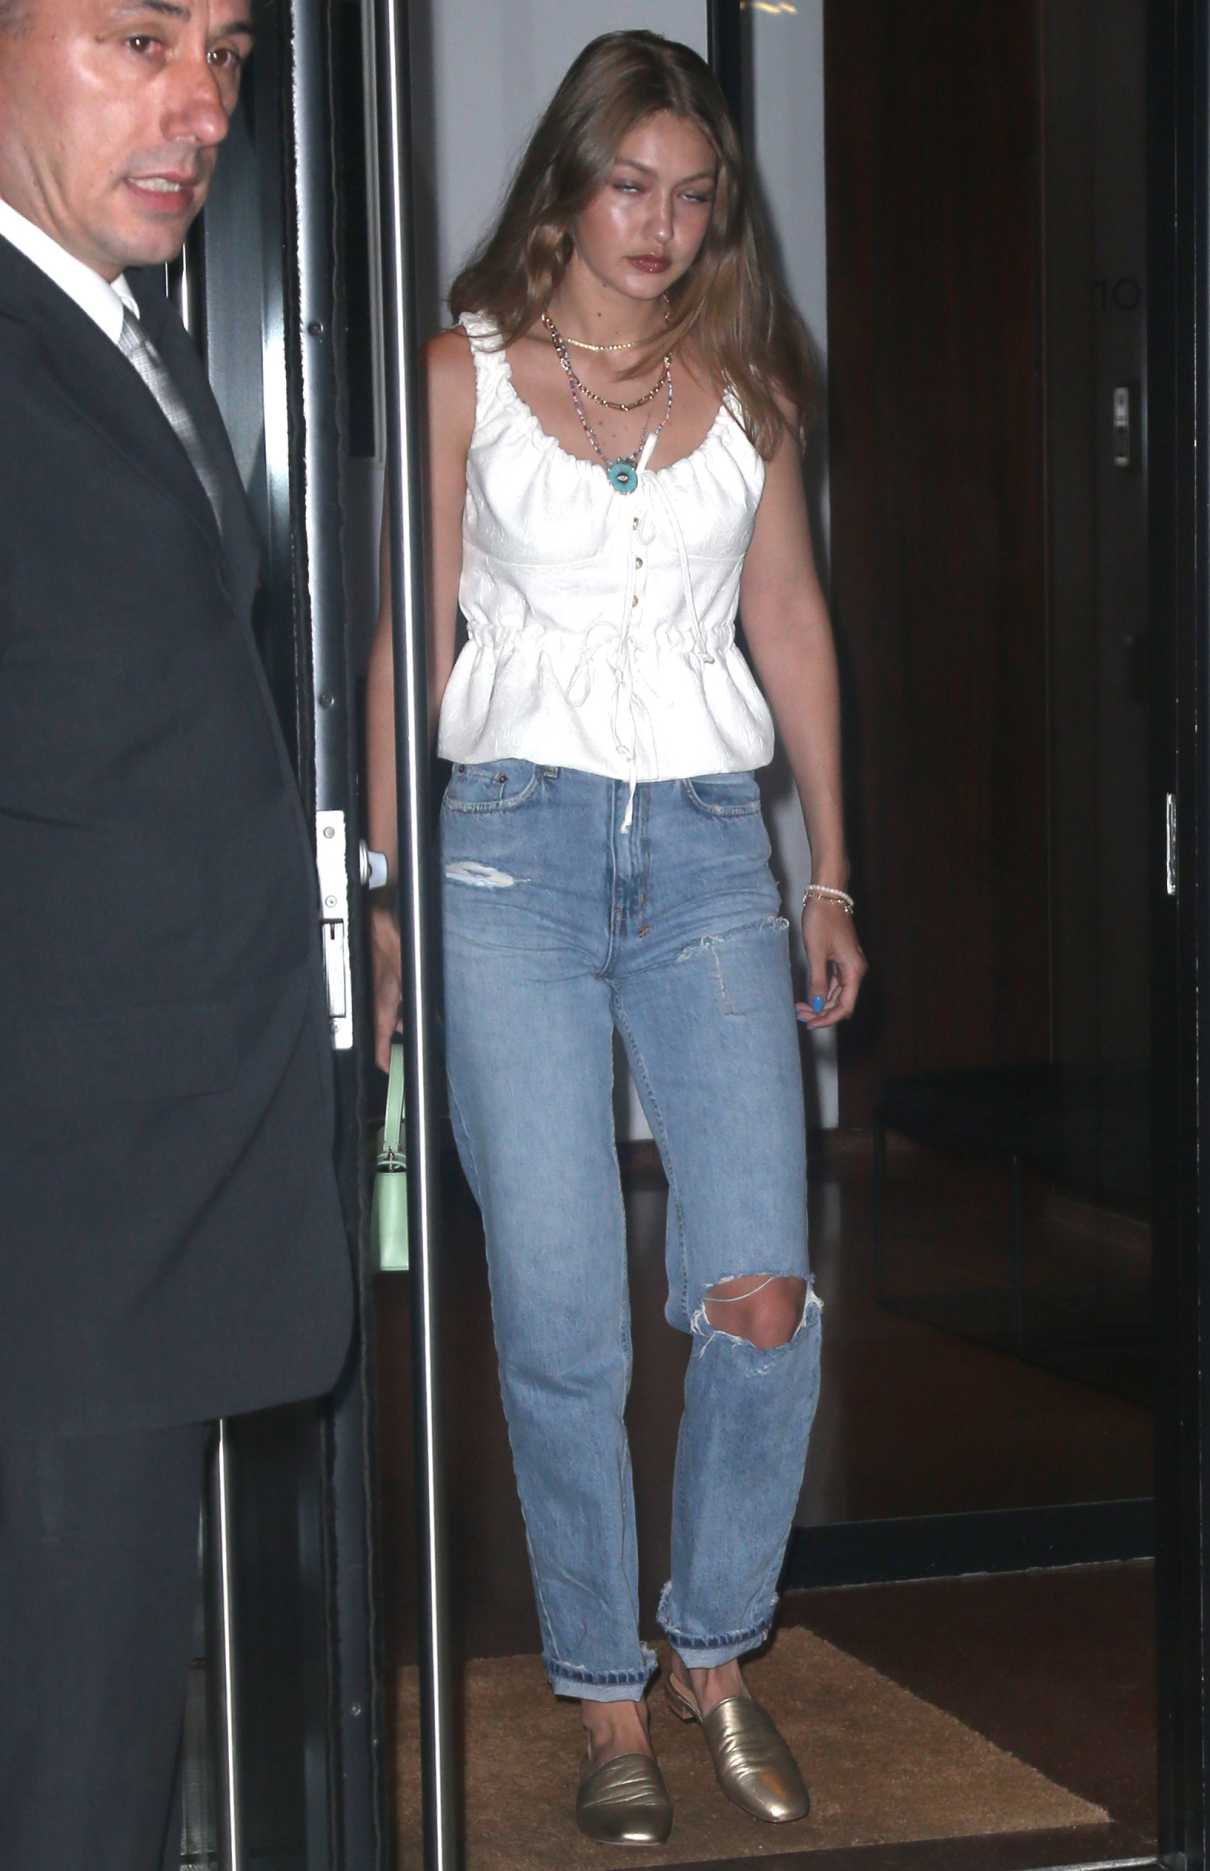 Gigi Hadid in a White Blouse